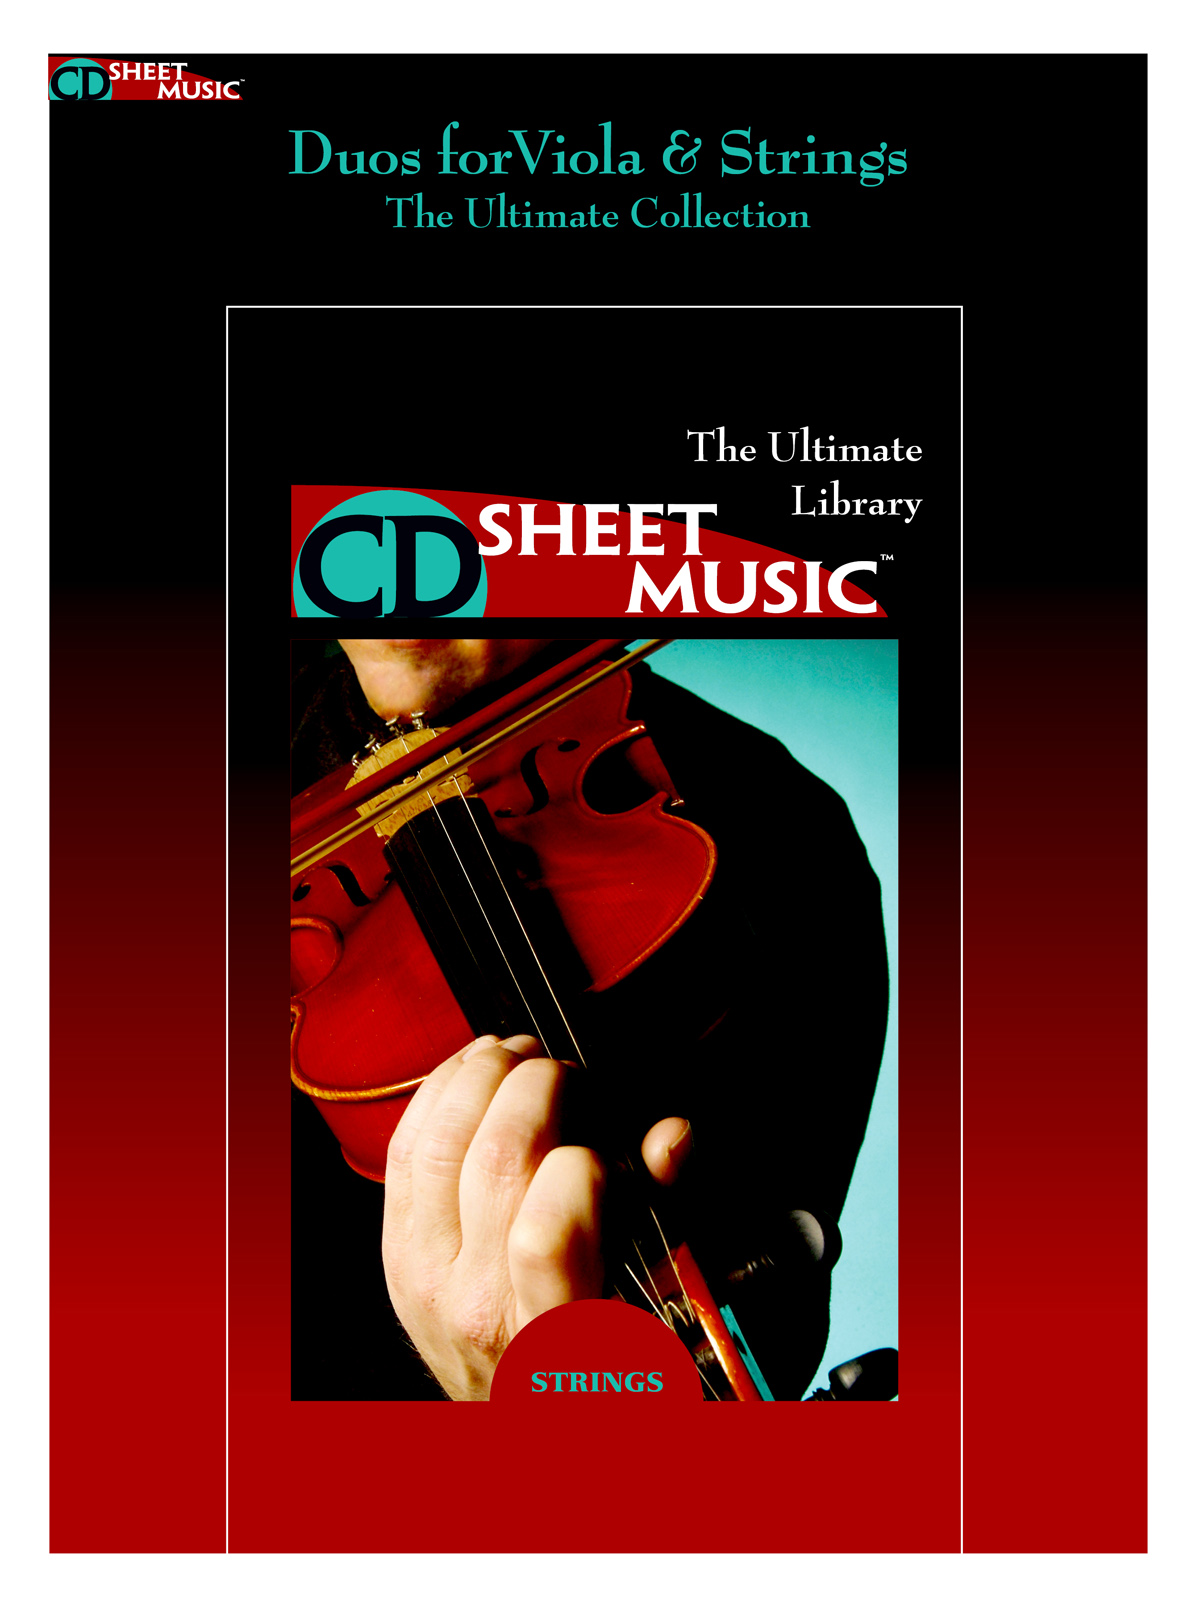 Duos for Viola and Strings: The Ultimate Collection